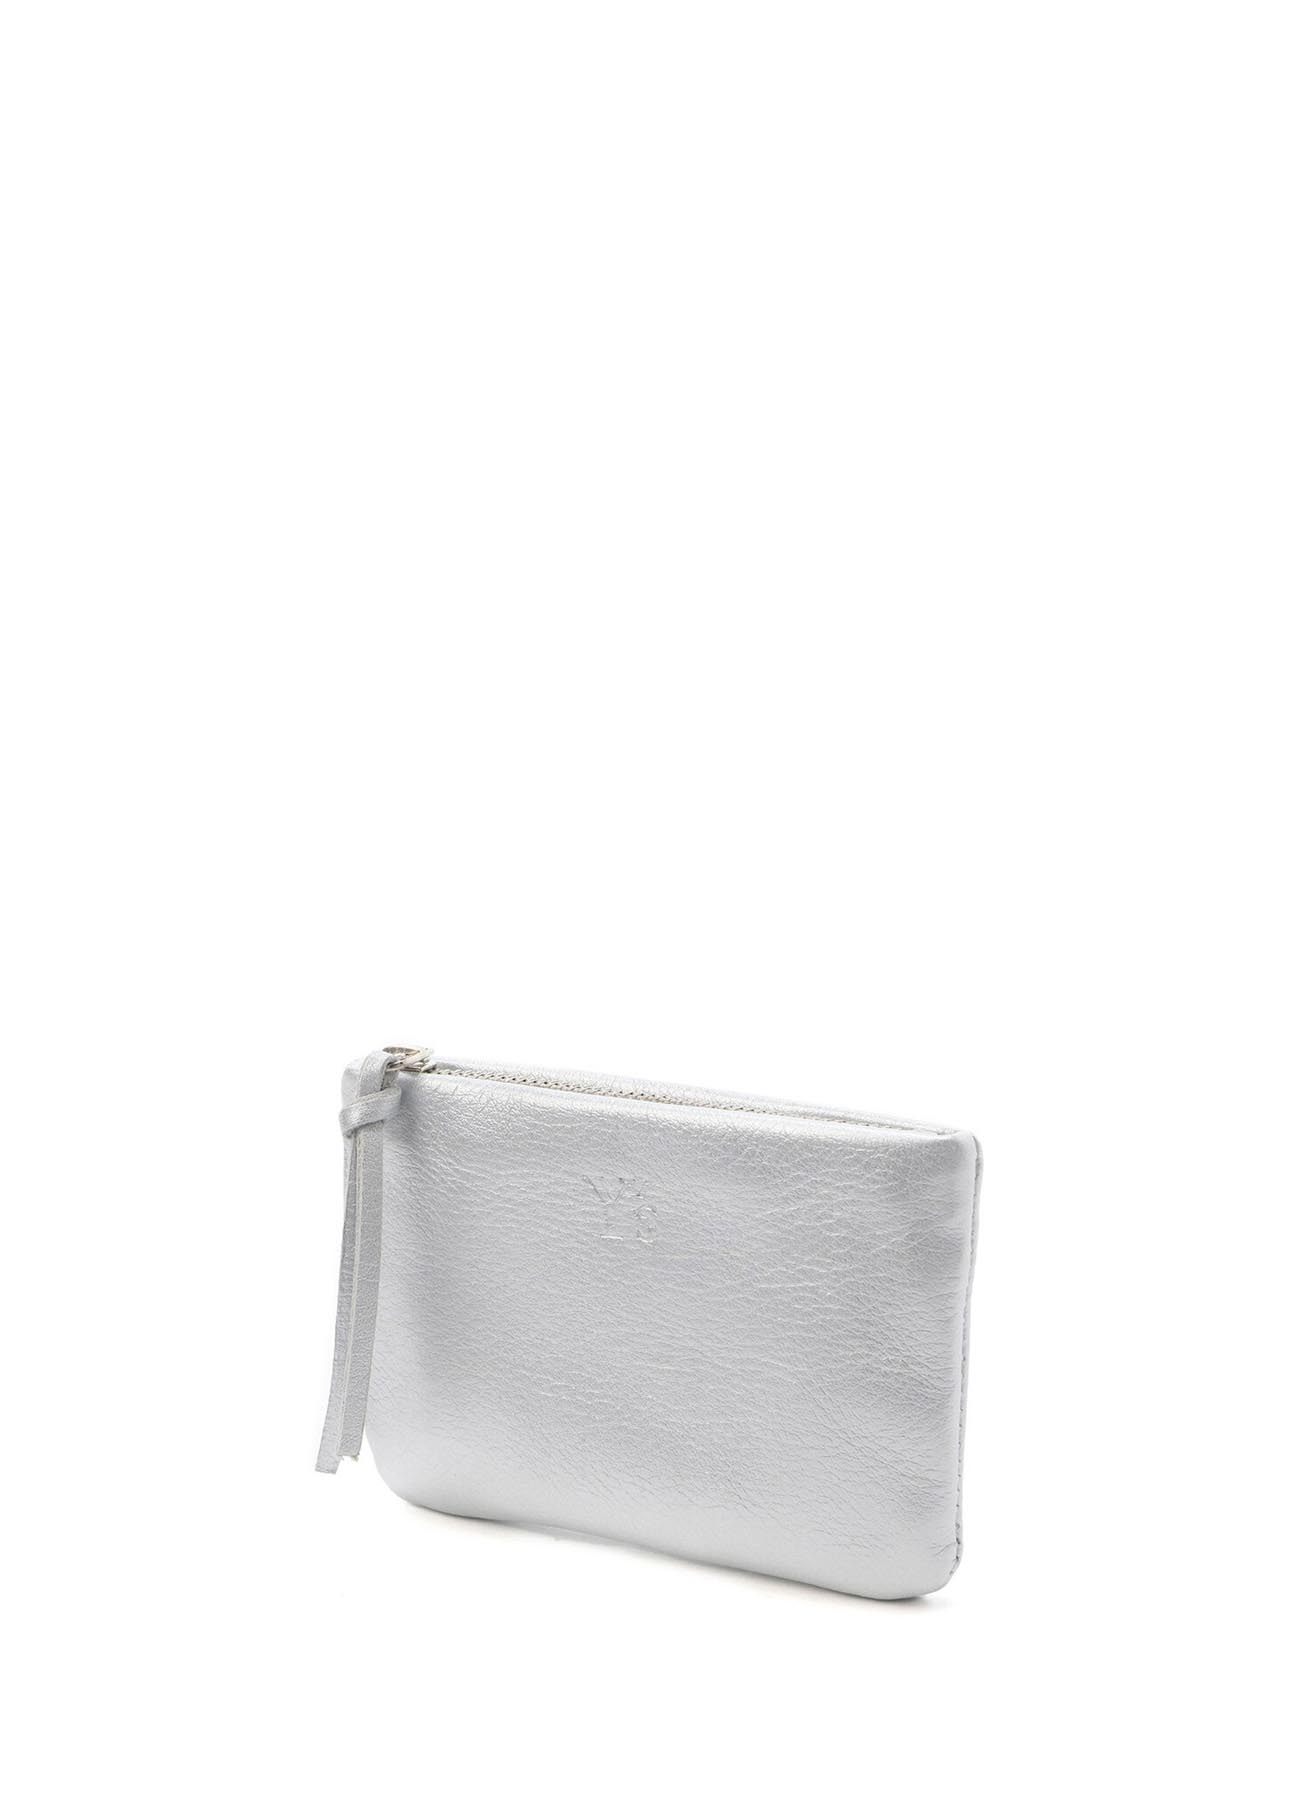 SOFT COLOR LEATHER FASTENER POUCH S